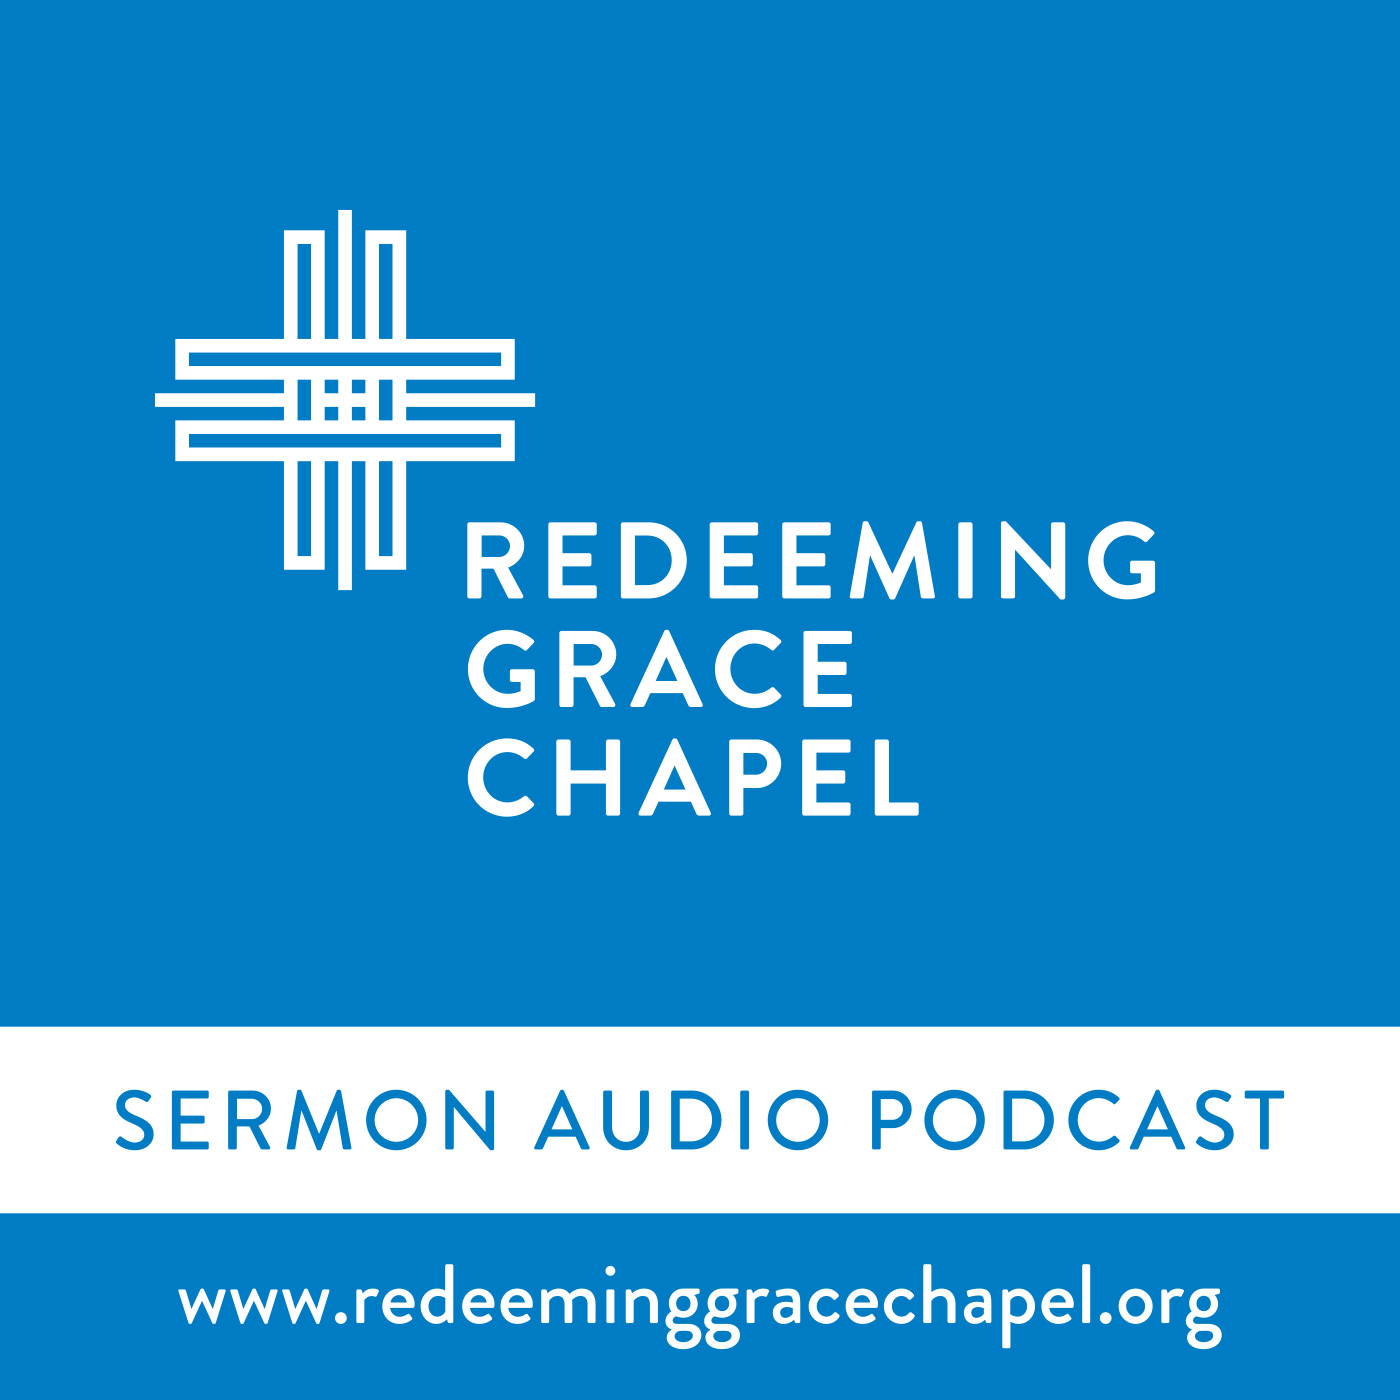 Joy - Redeeming Grace Chapel